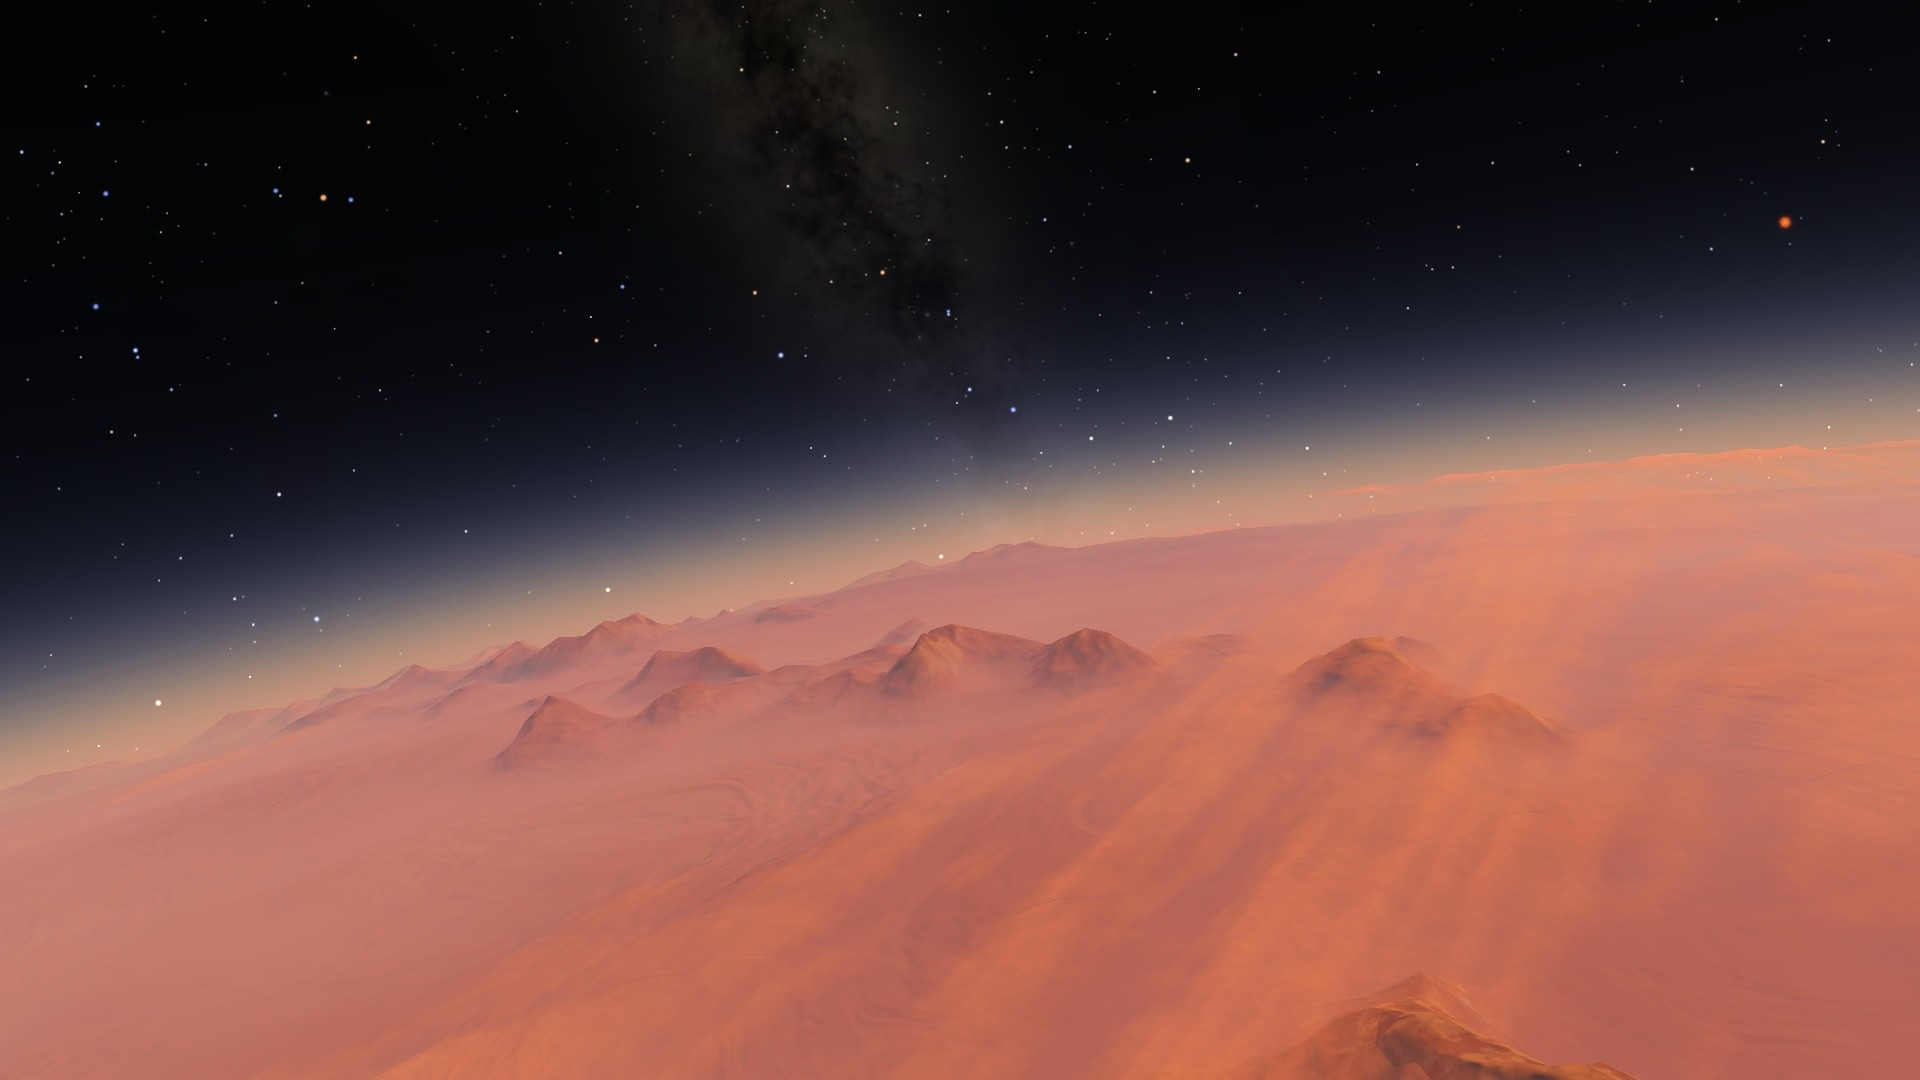 Surface of a planet space engine hd wallpaper - Deep space 3 wallpaper engine ...